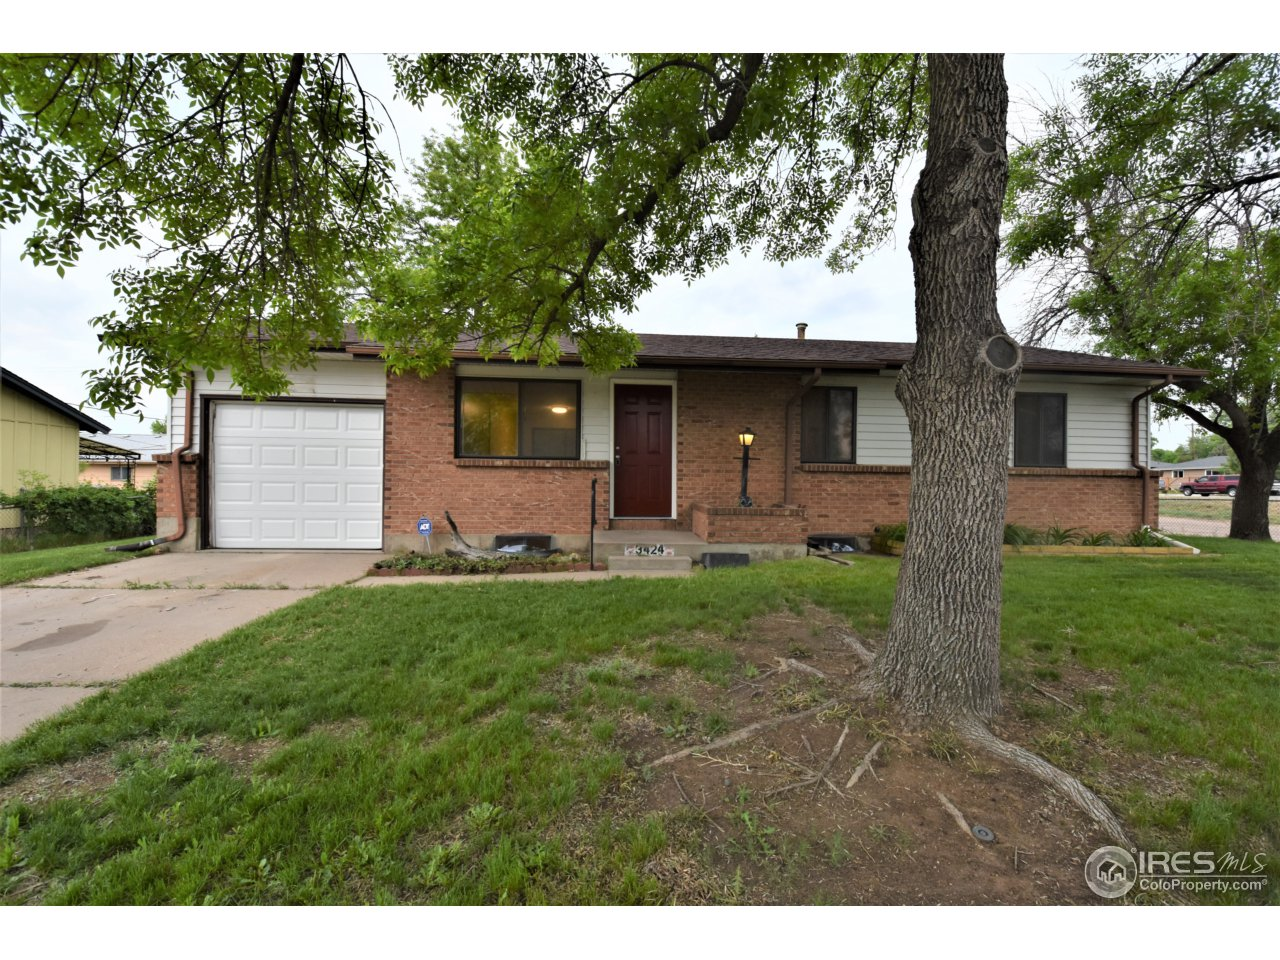 3424 W 5th St Rd, Greeley CO 80634